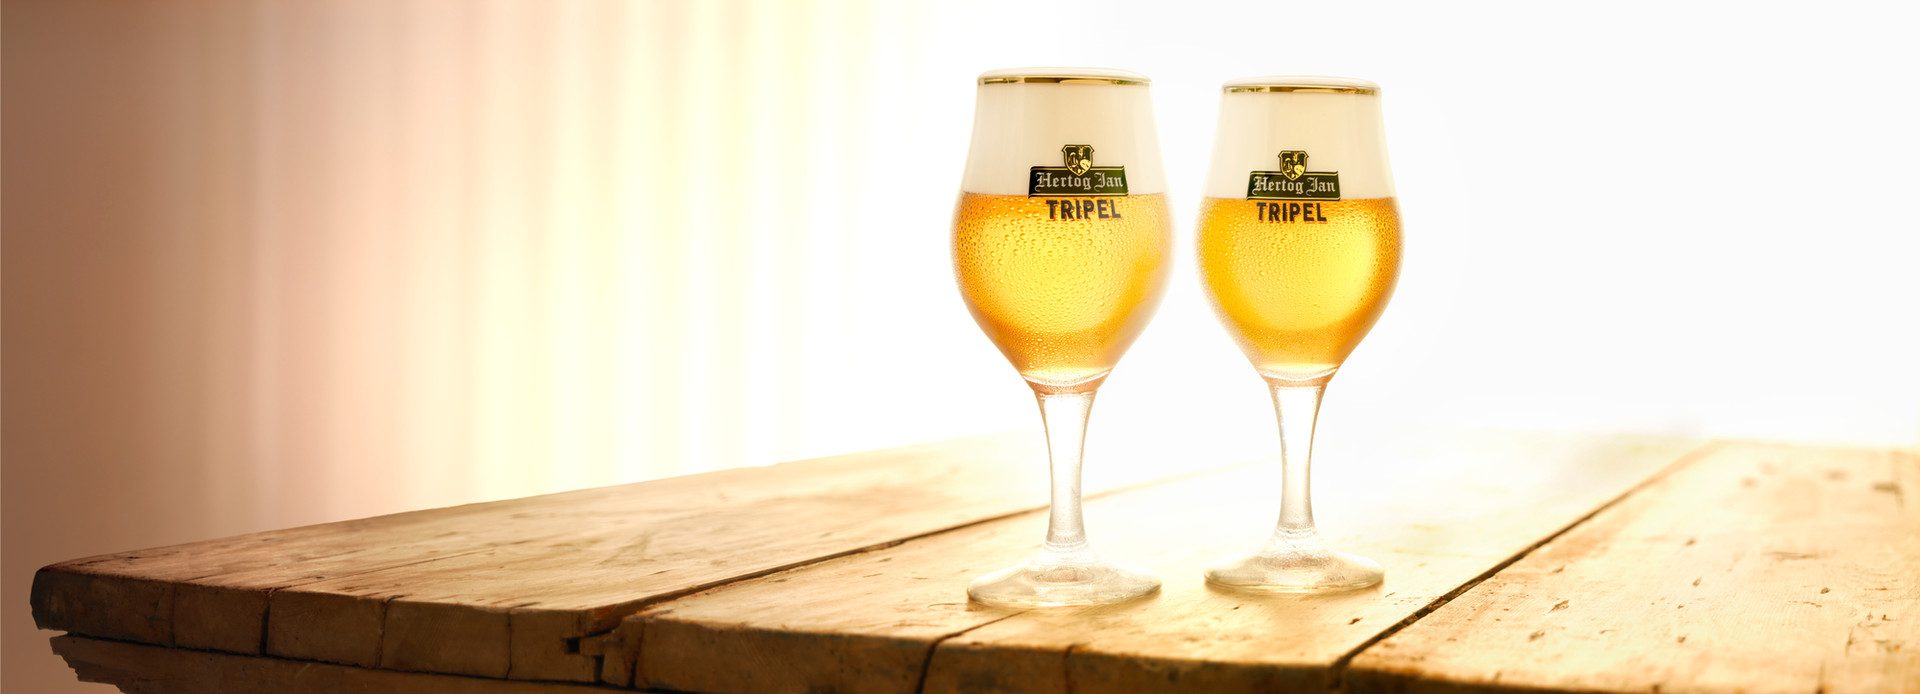 Product photography Hertog Jan Tripel